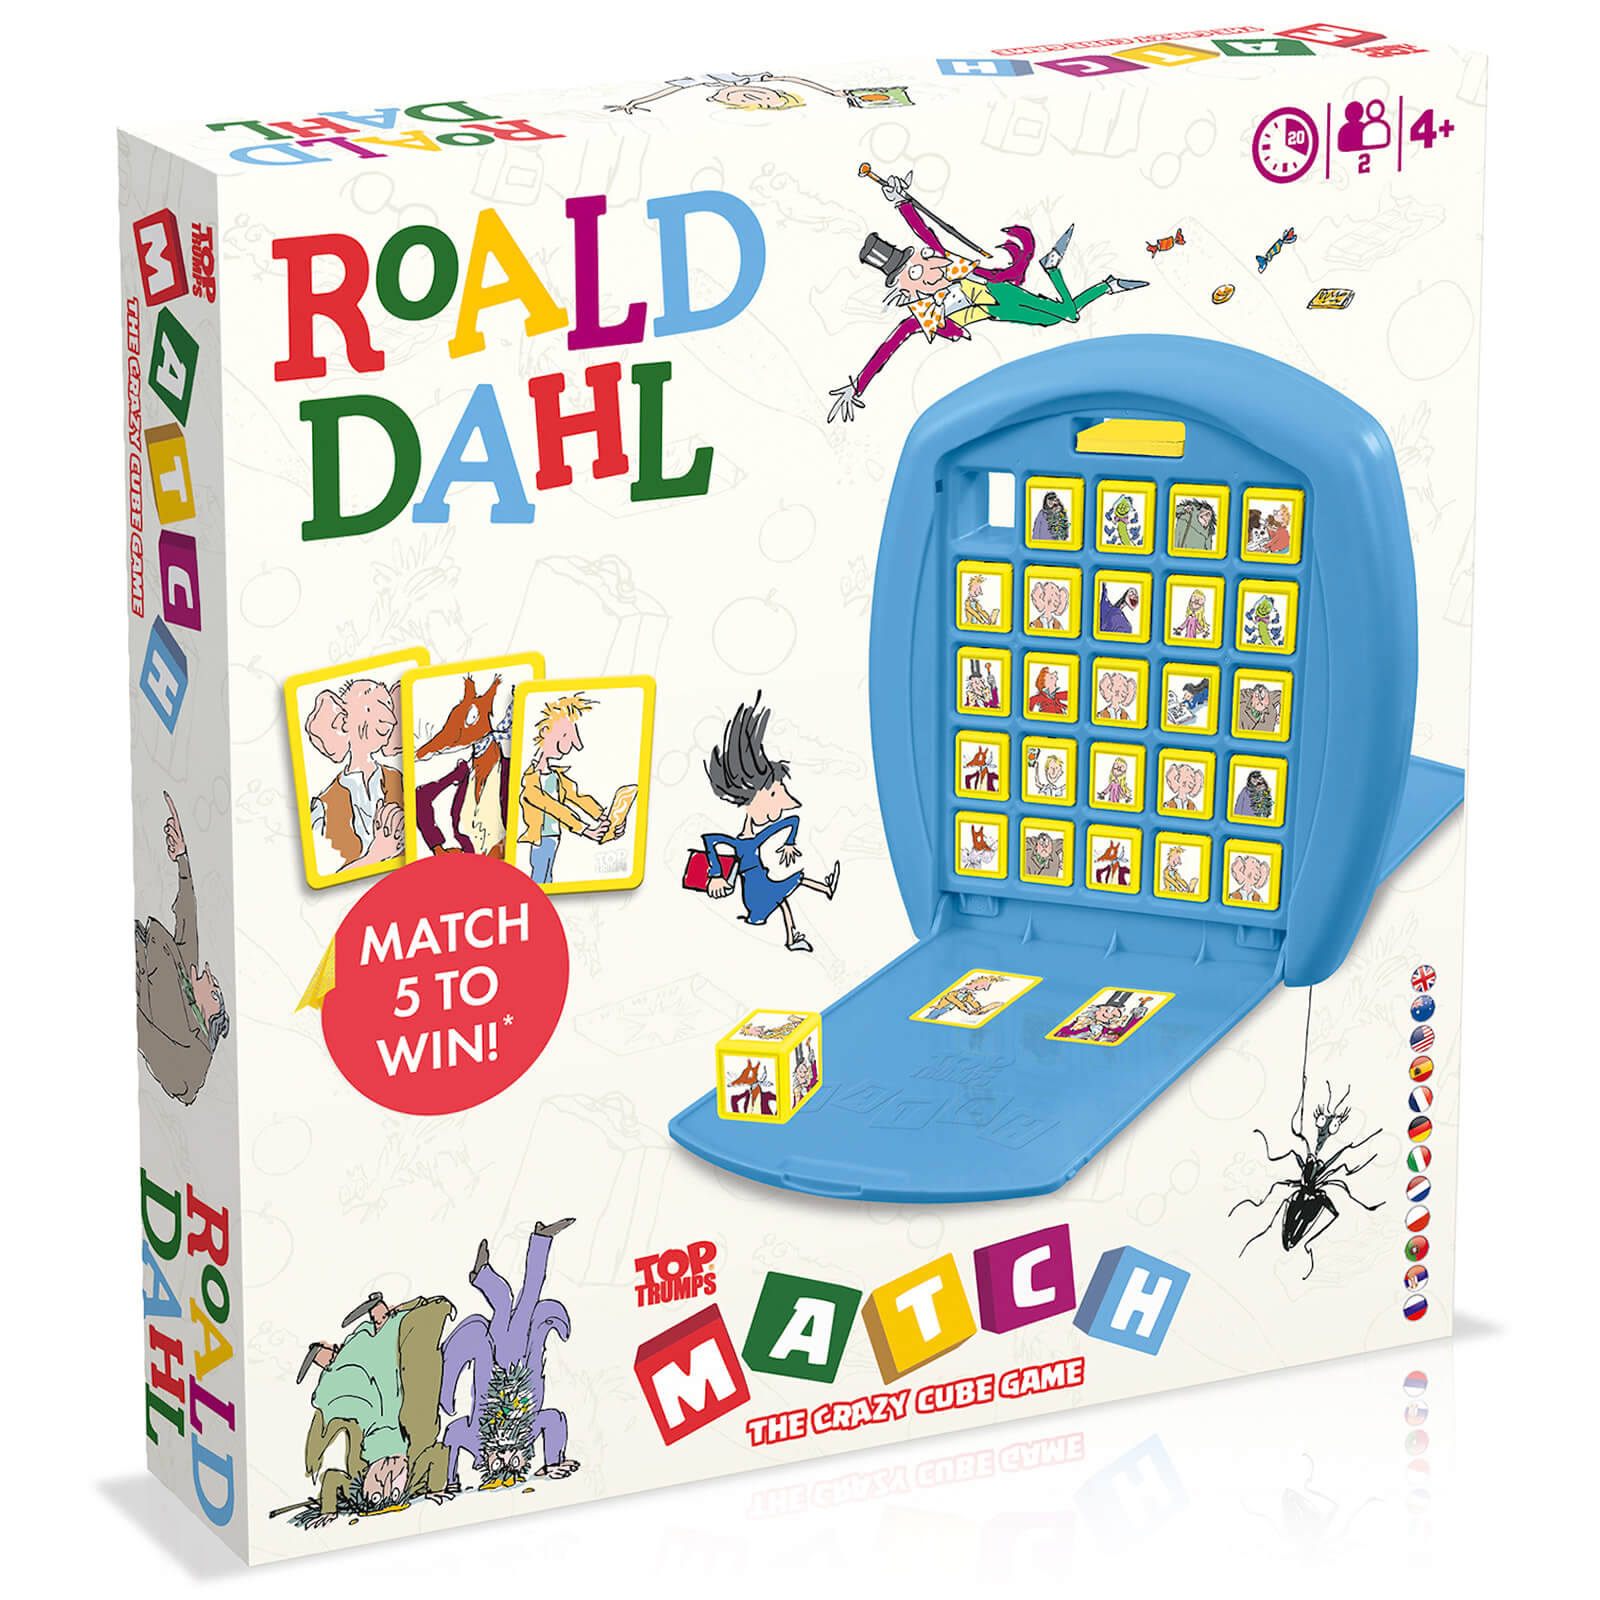 Image of Top Trumps Match Board Game - Roald Dahl Edition